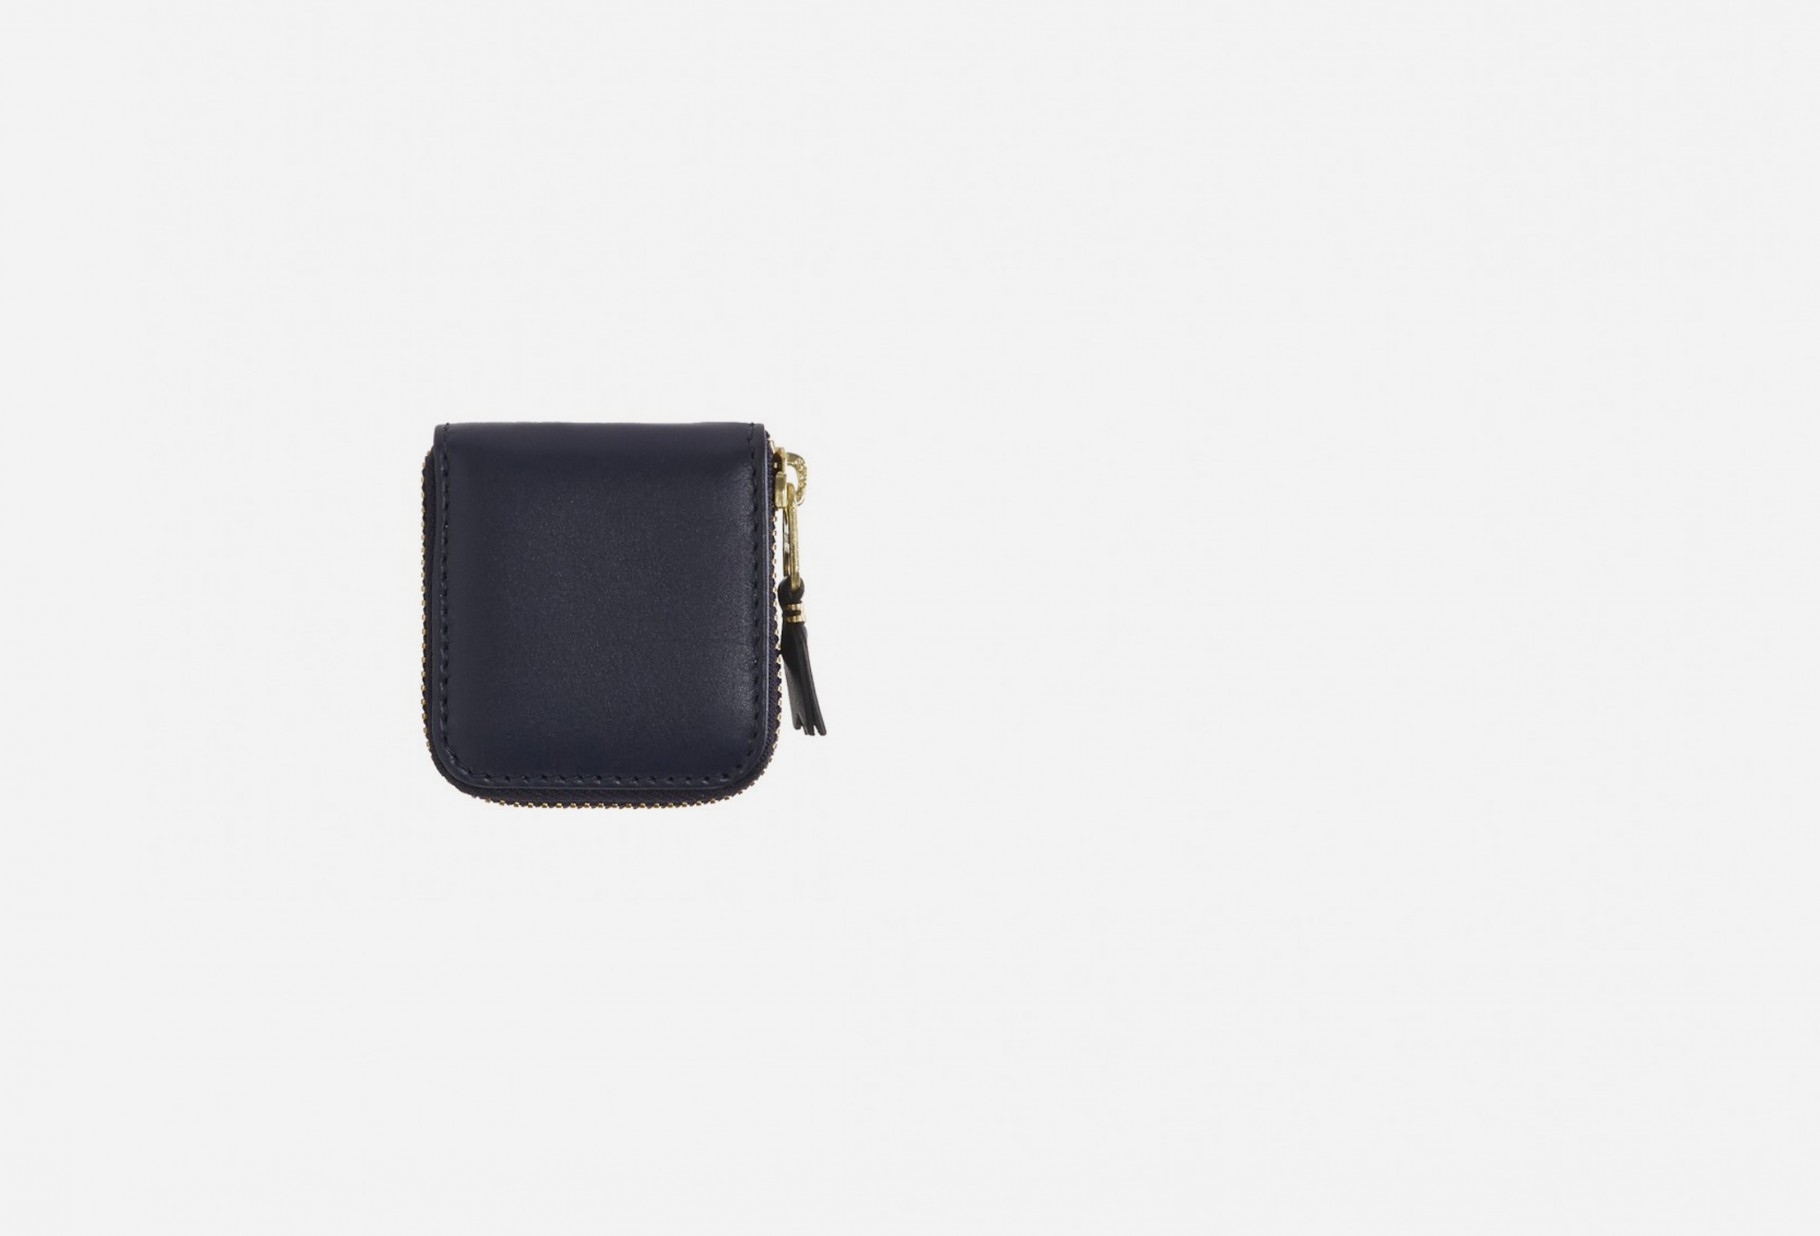 COMME DES GARÇONS WALLETS / Cdg leather wallet classic Sa4100 navy